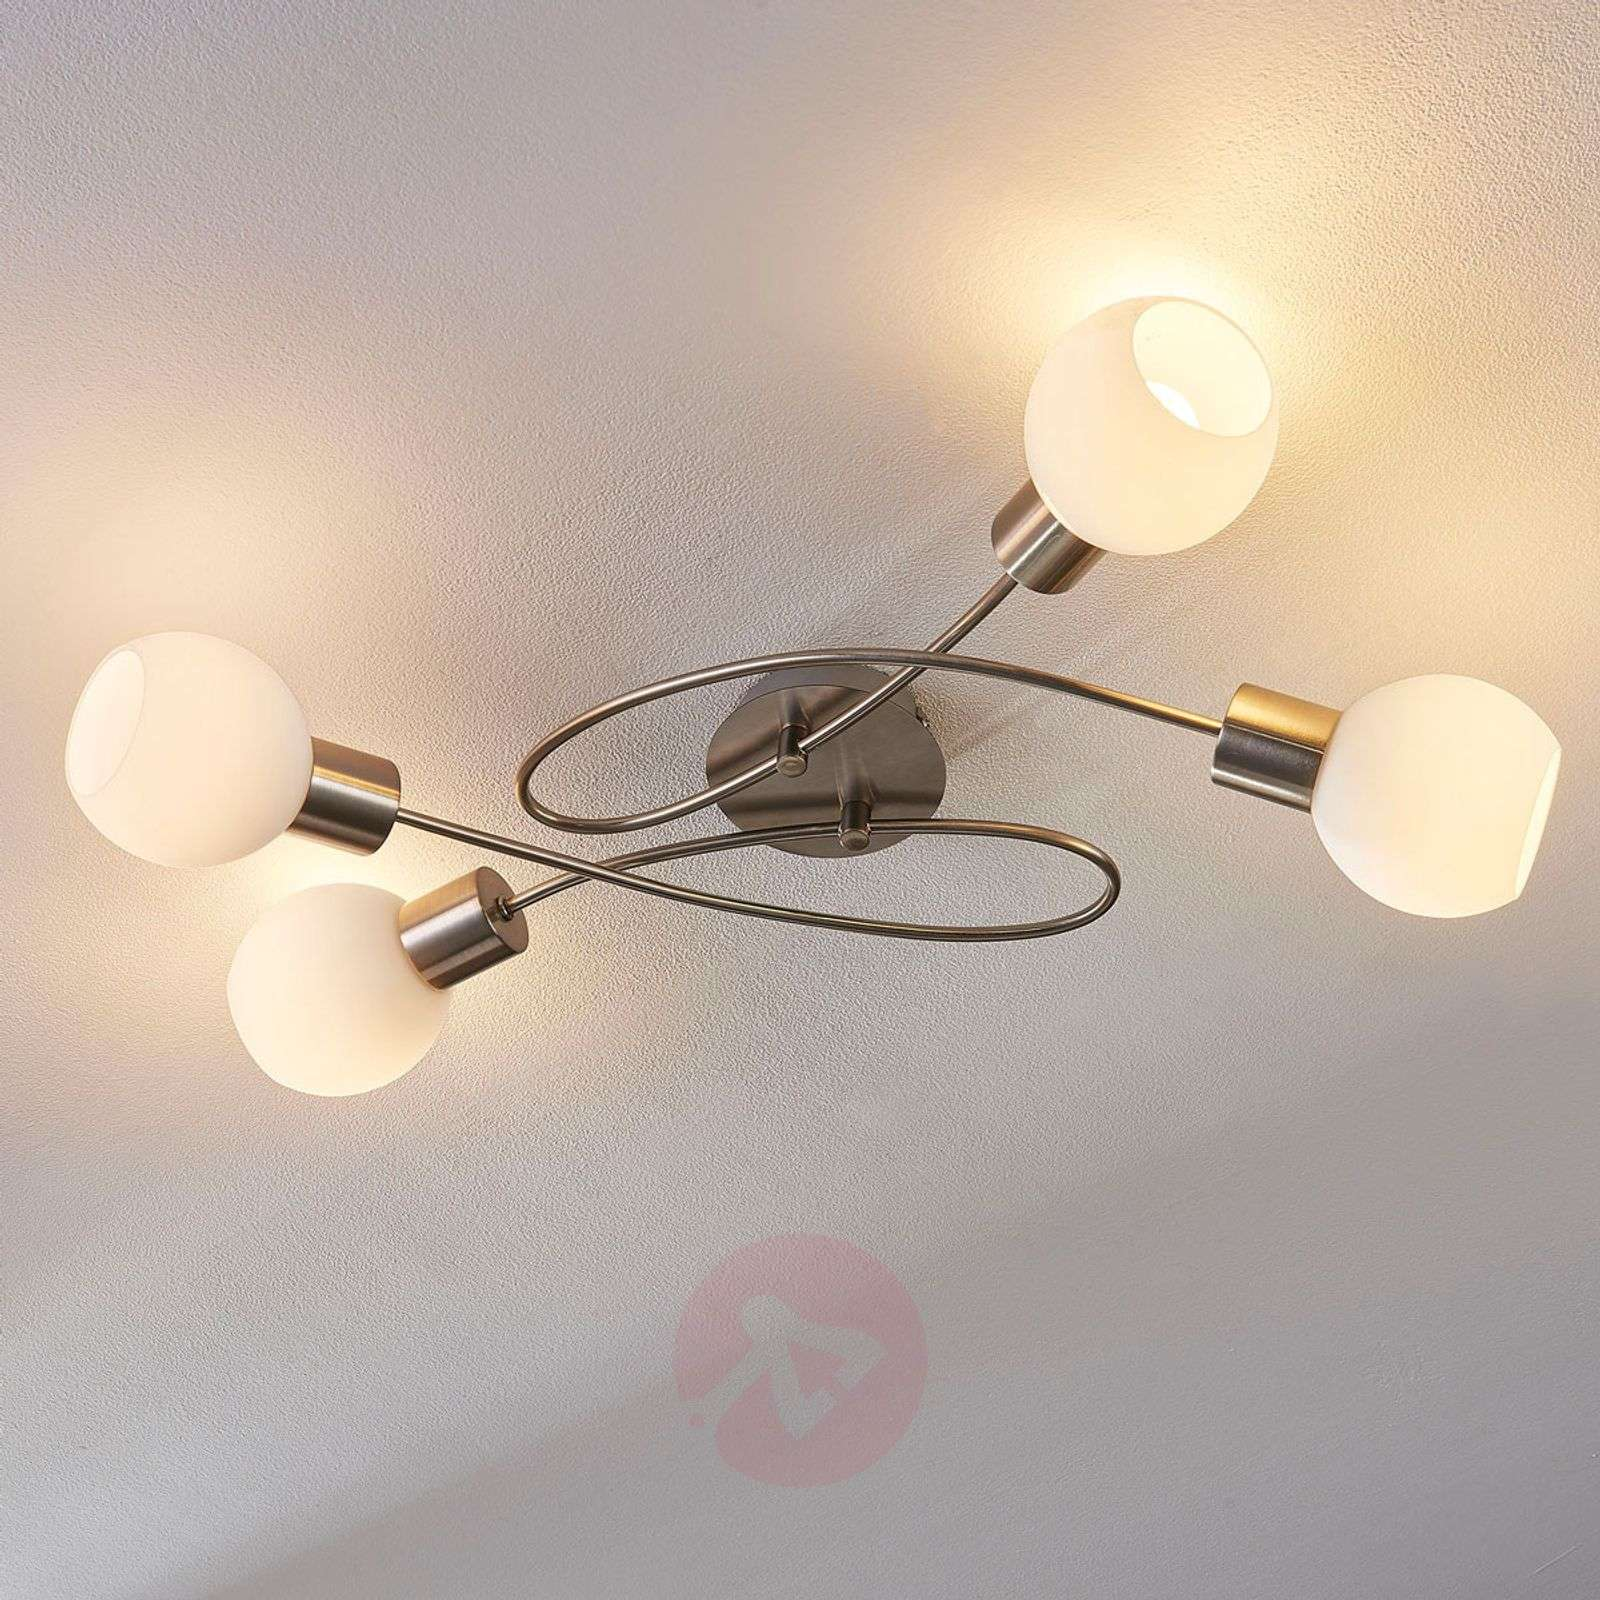 Plafonnier LED Hailey à 4 lampes, nickel-9621040-02